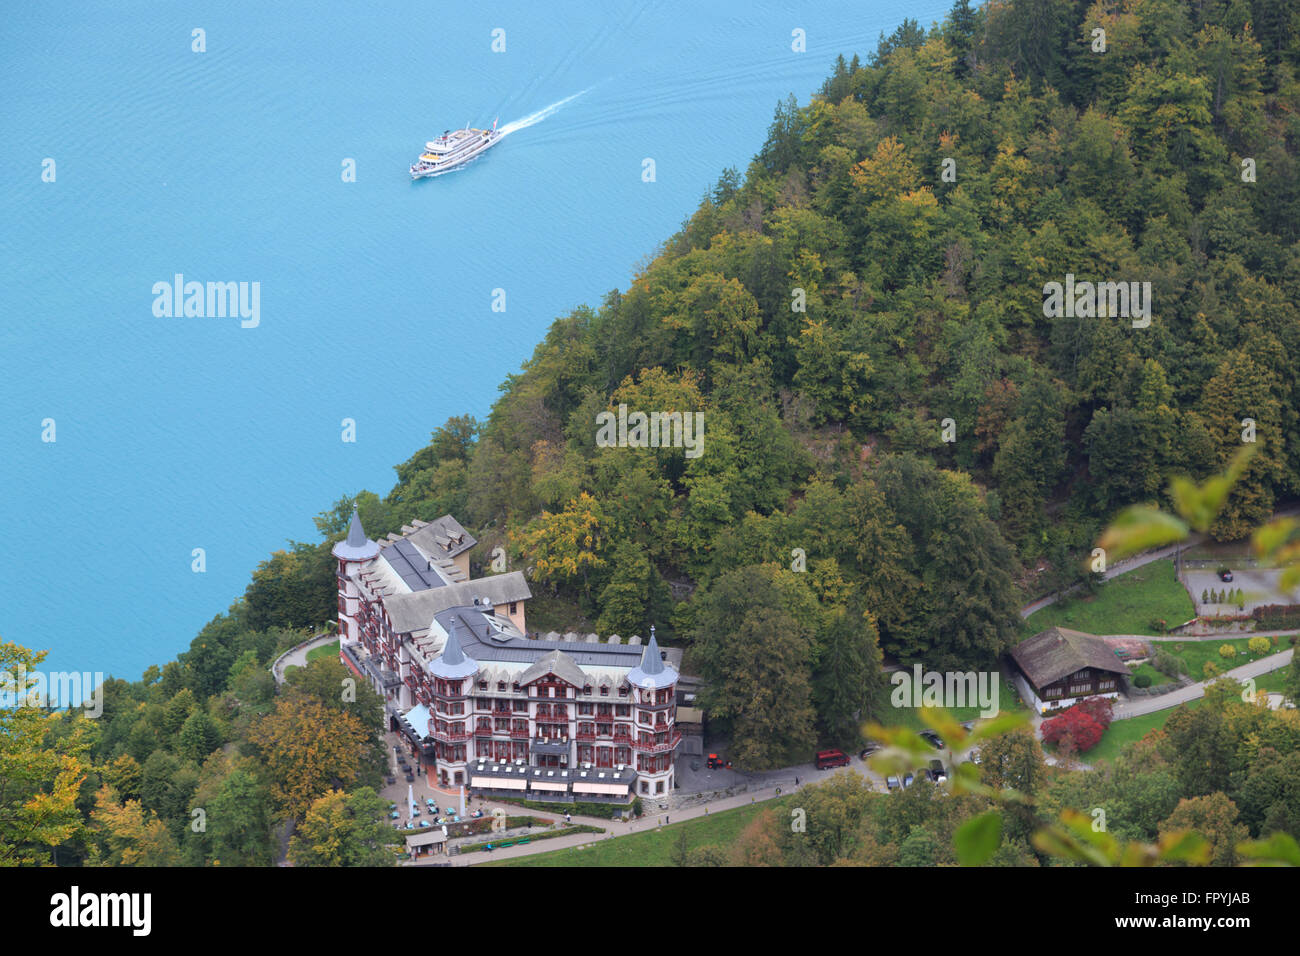 A photograph of a passenger ferry on Lake Brienz in Switzerland. Stock Photo